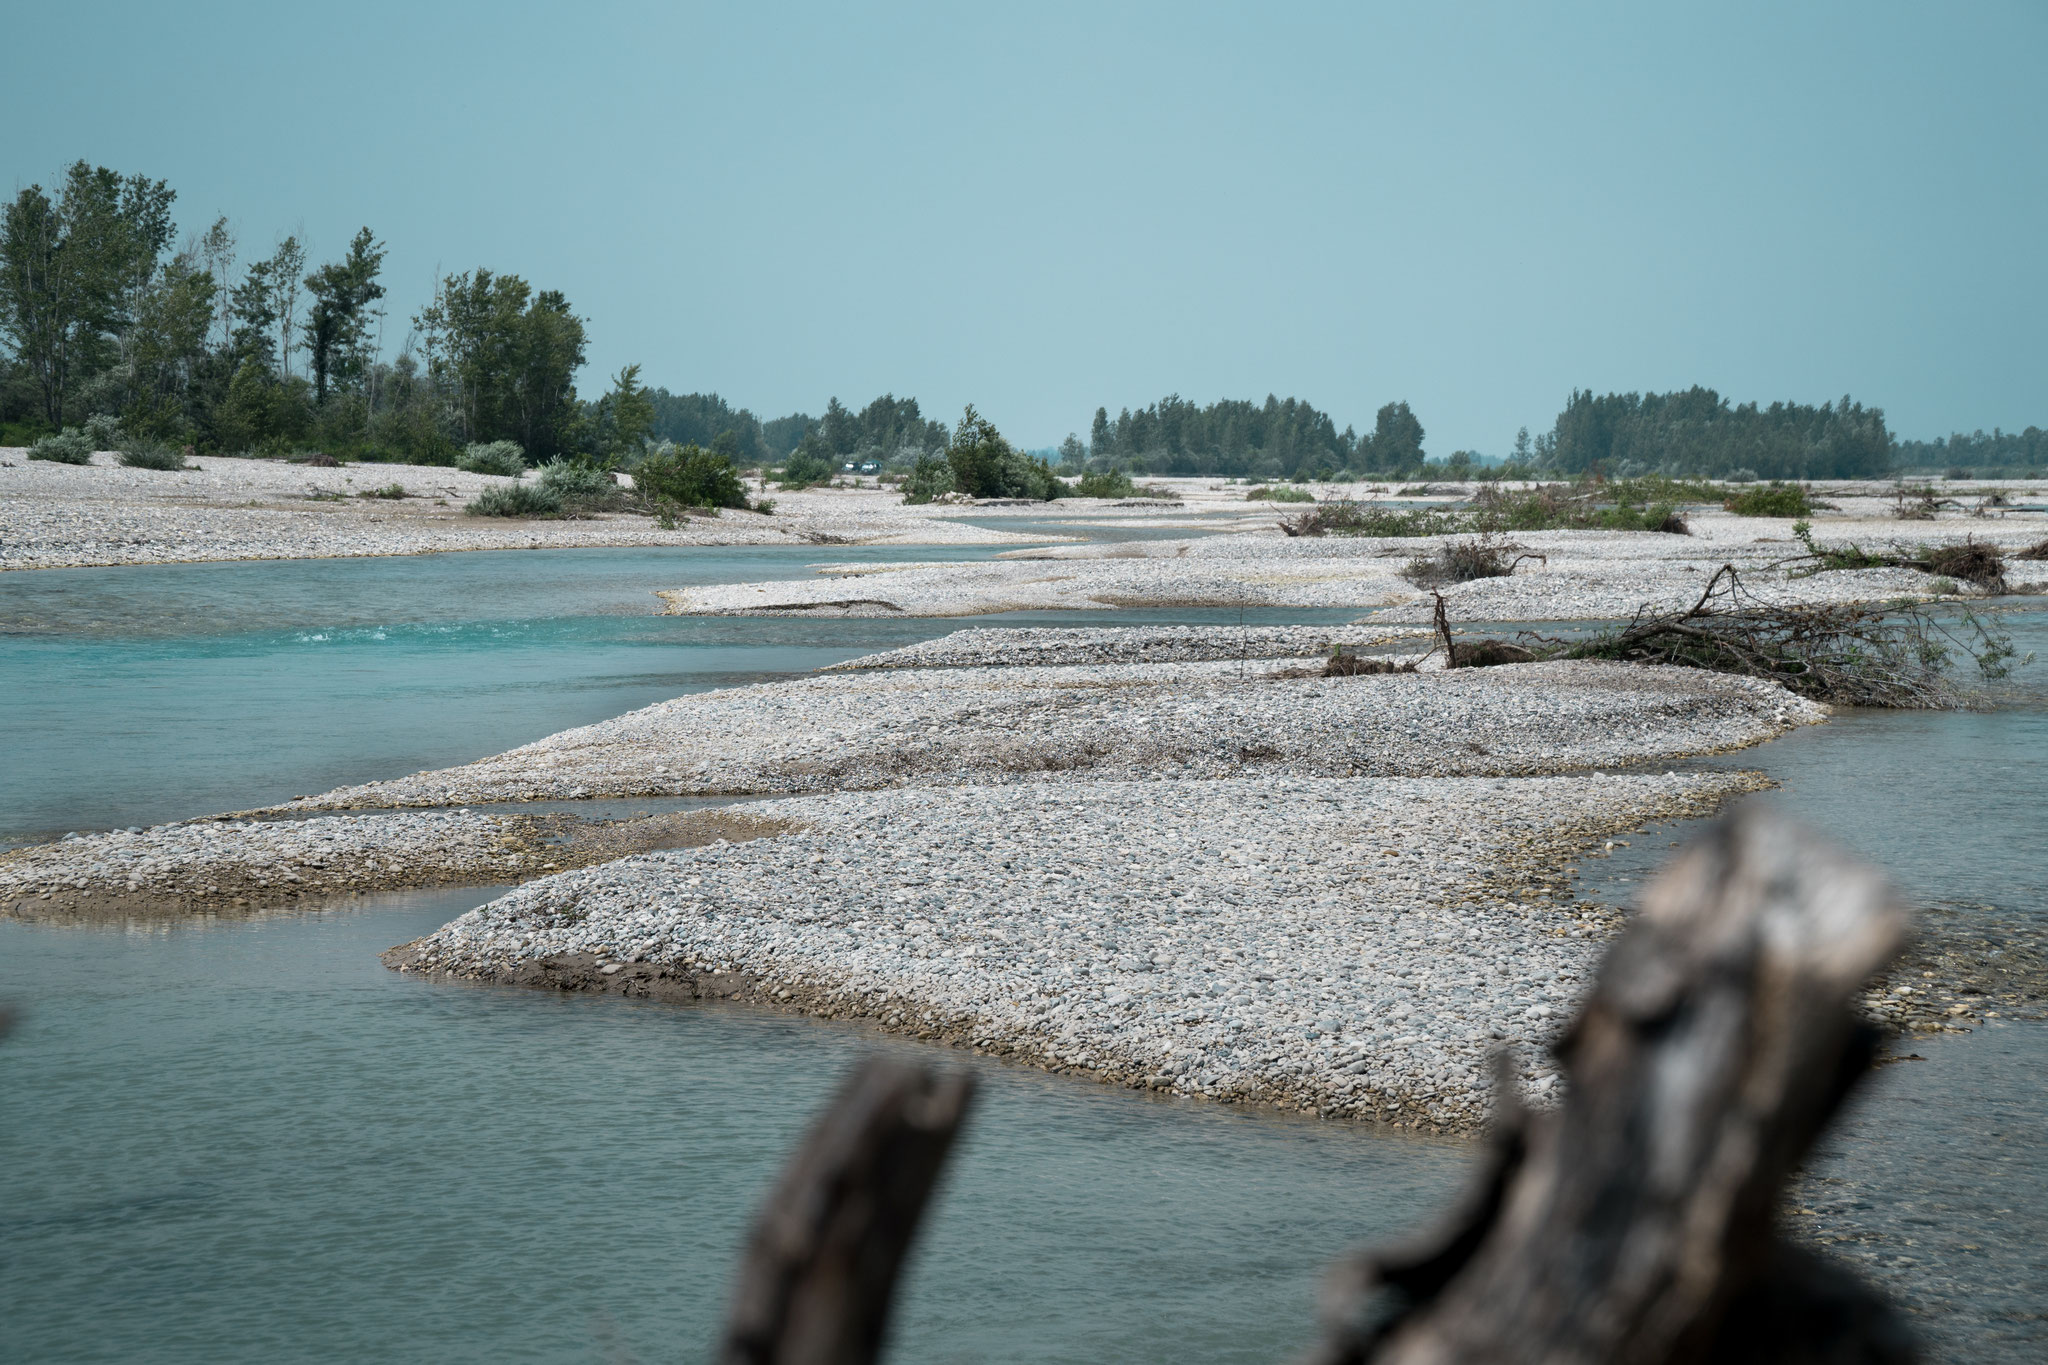 River Tagliamento in Italy - the last freeflowing river in Central Europe